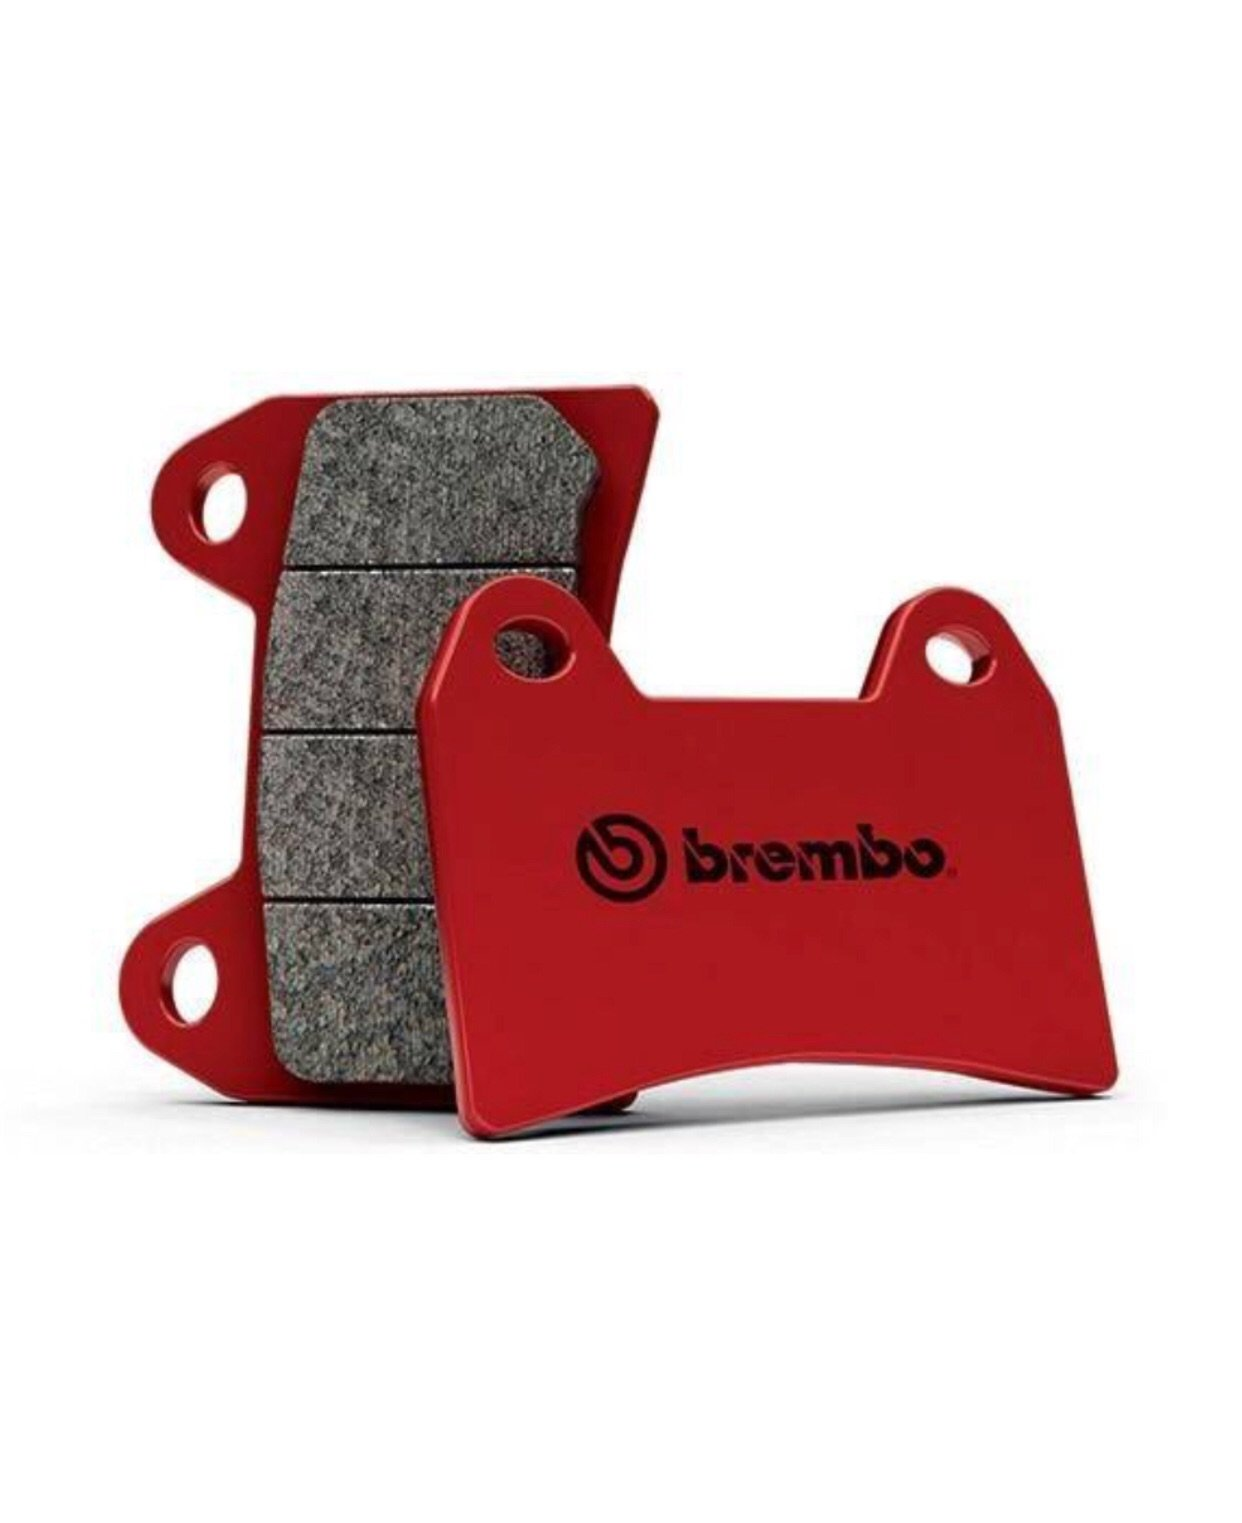 Brake Pads - Yamaha, Brake Pads, Brembo - Race and Trackday Parts